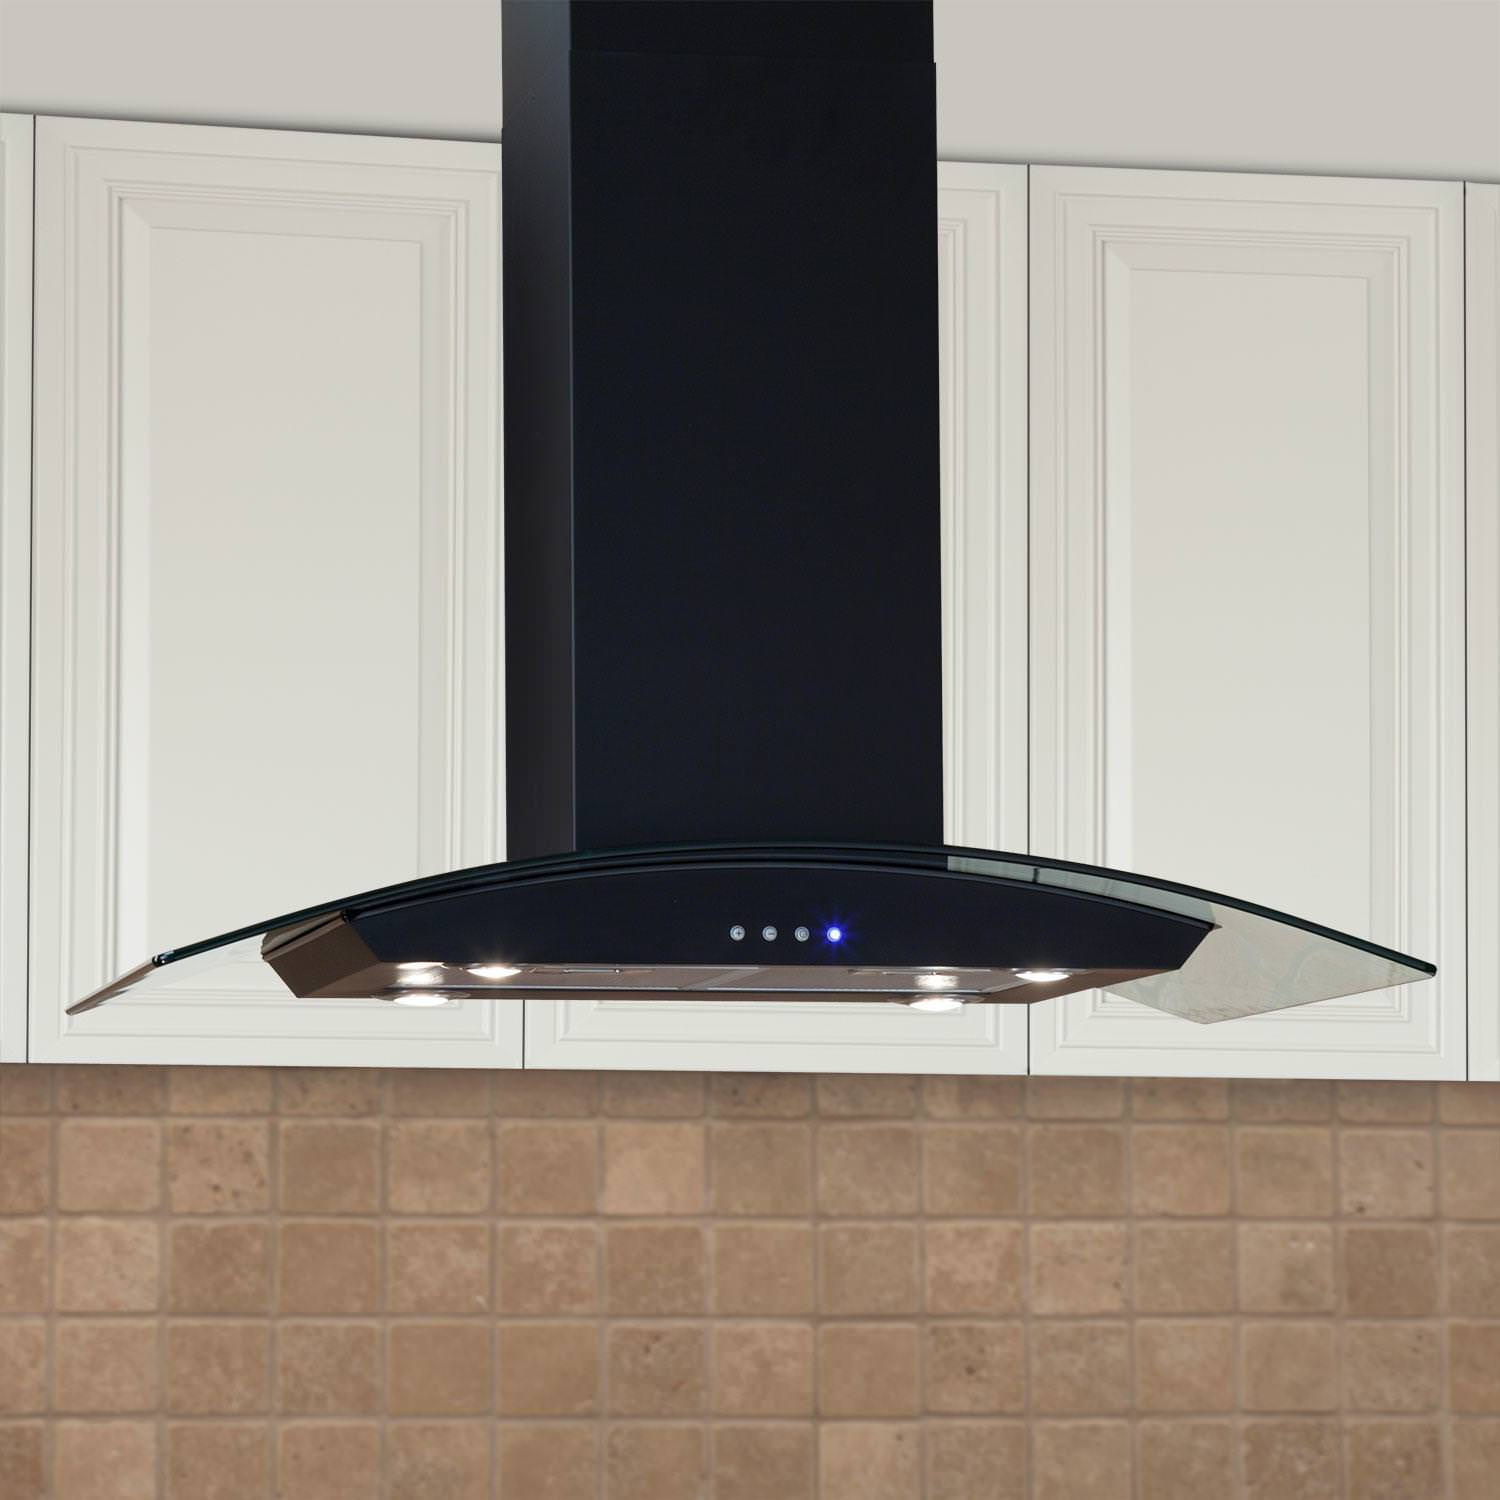 Image of: Stove Hoods Sears